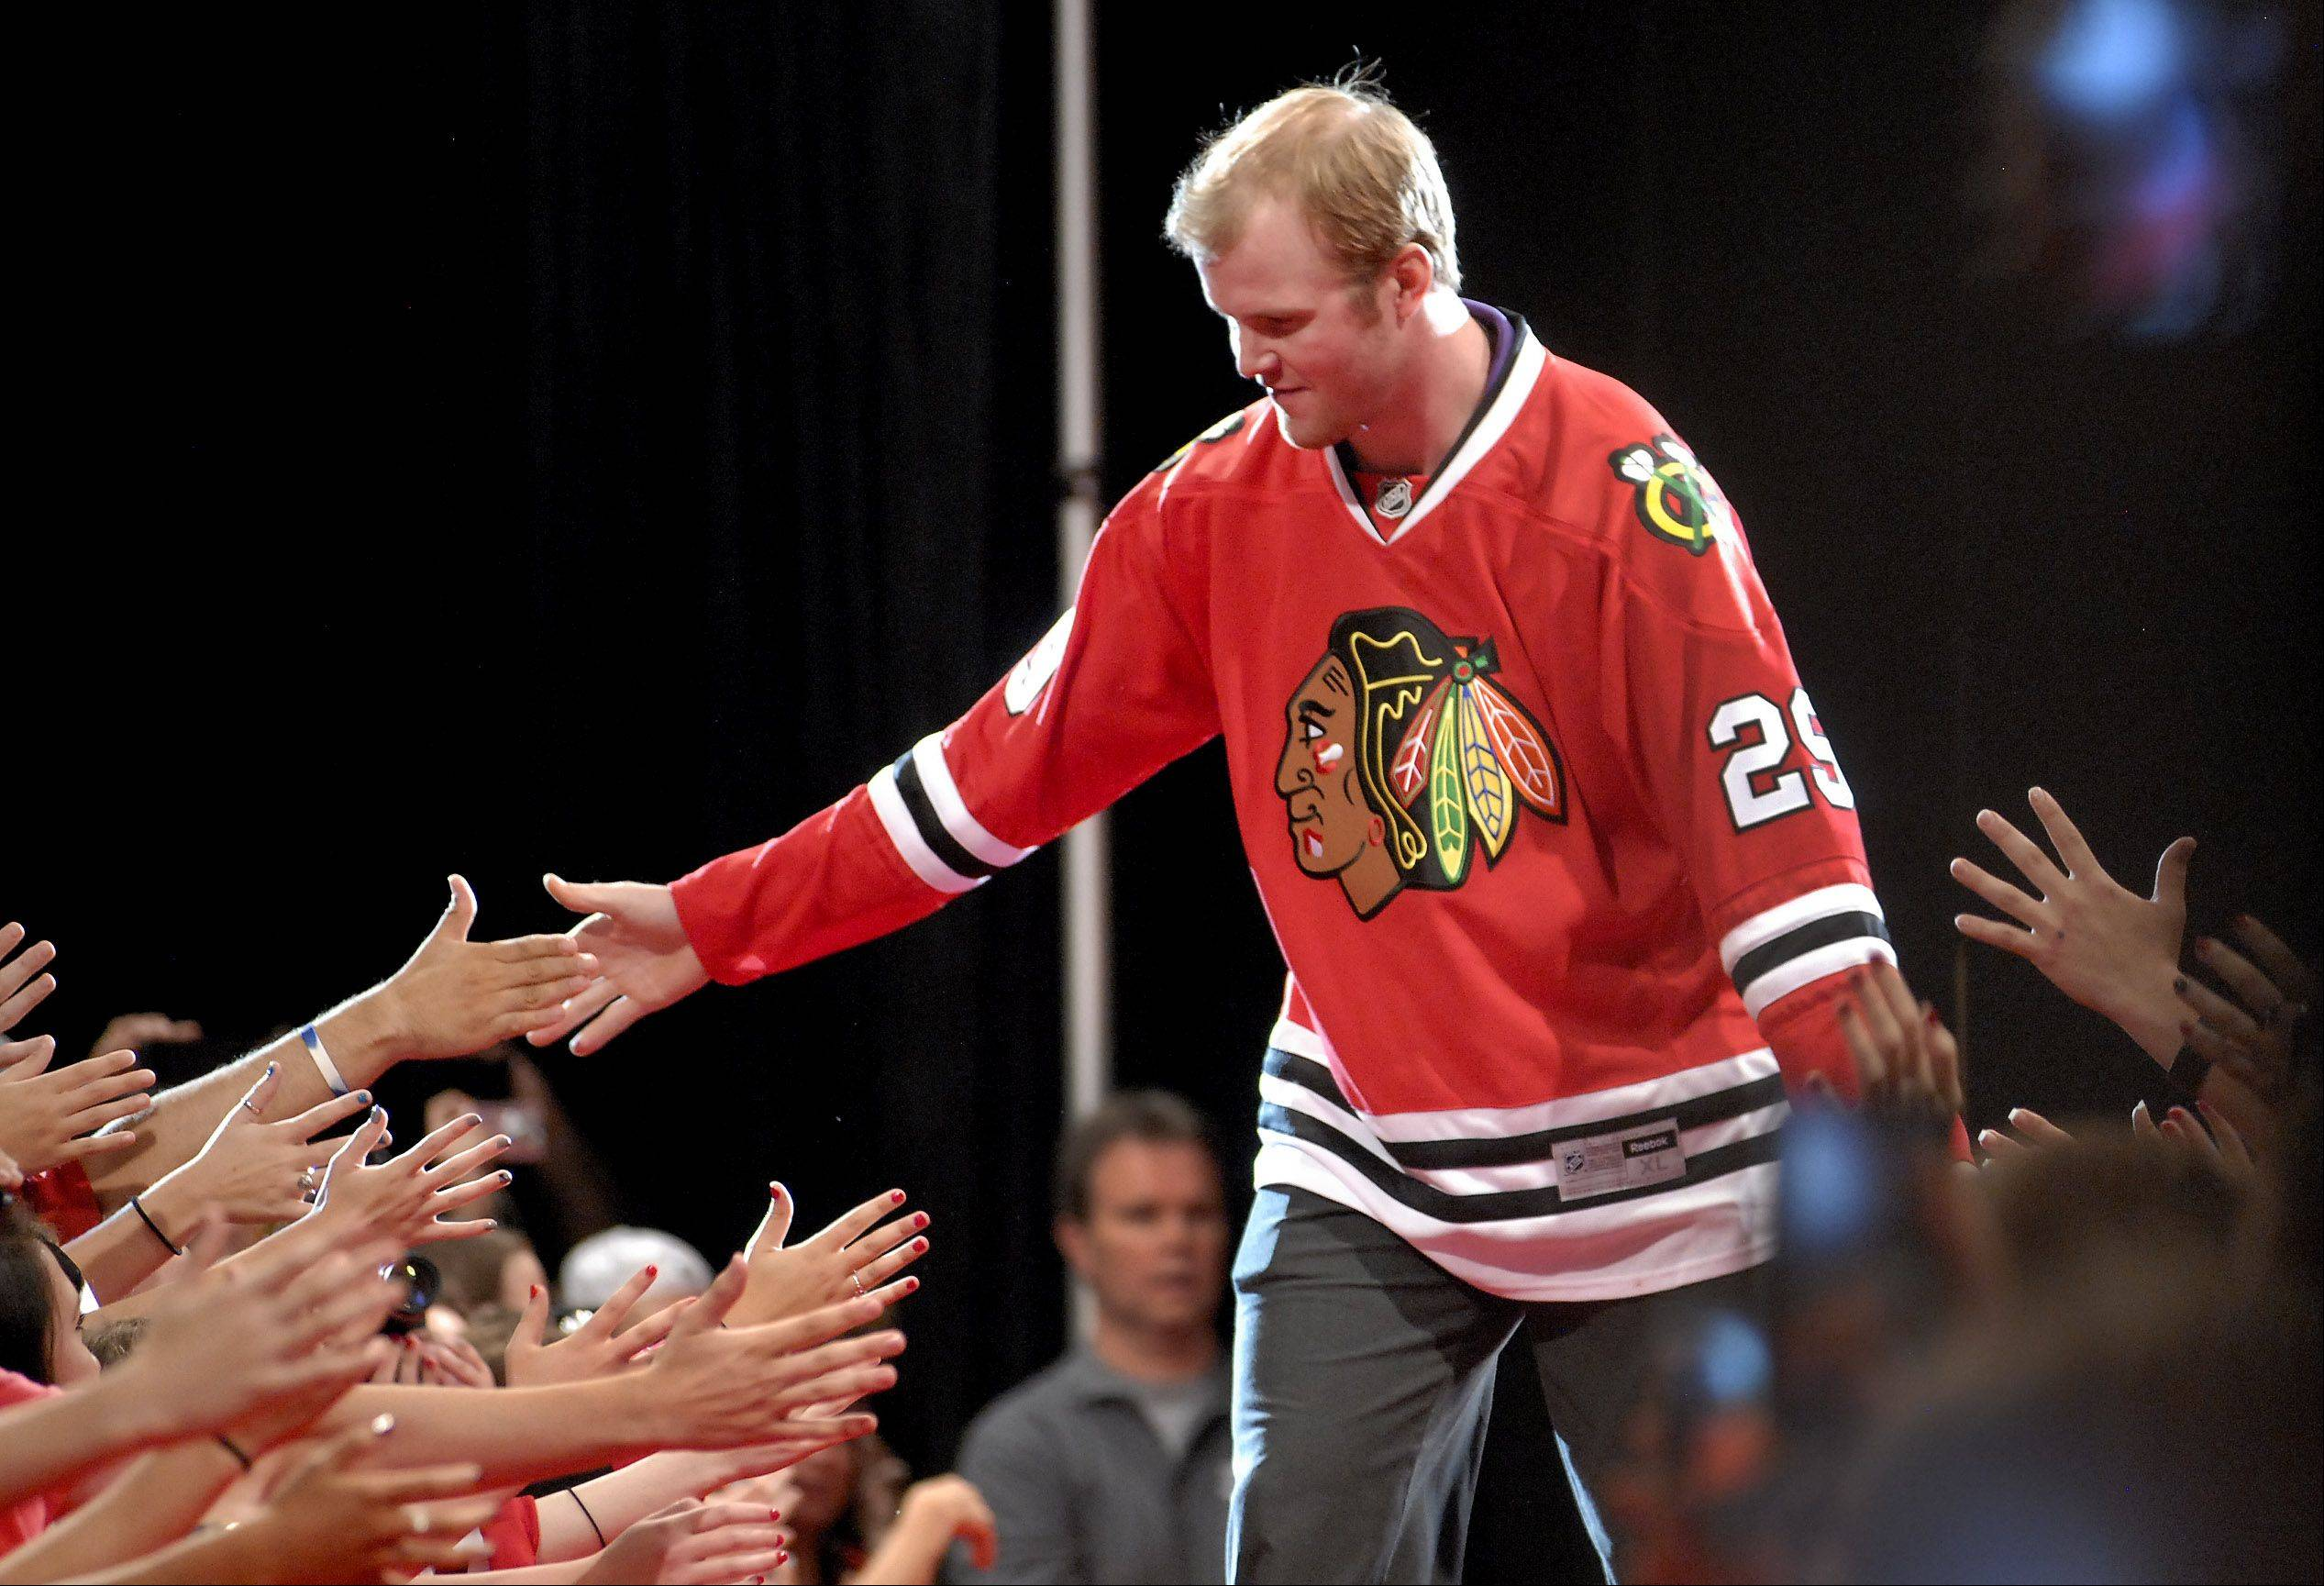 Bryan Bickell runs the fan gauntlet while being introduced at the annual Blackhawks Convention this weekend. After a big role in the playoffs and a new contract, Bickell is getting married next weekend.